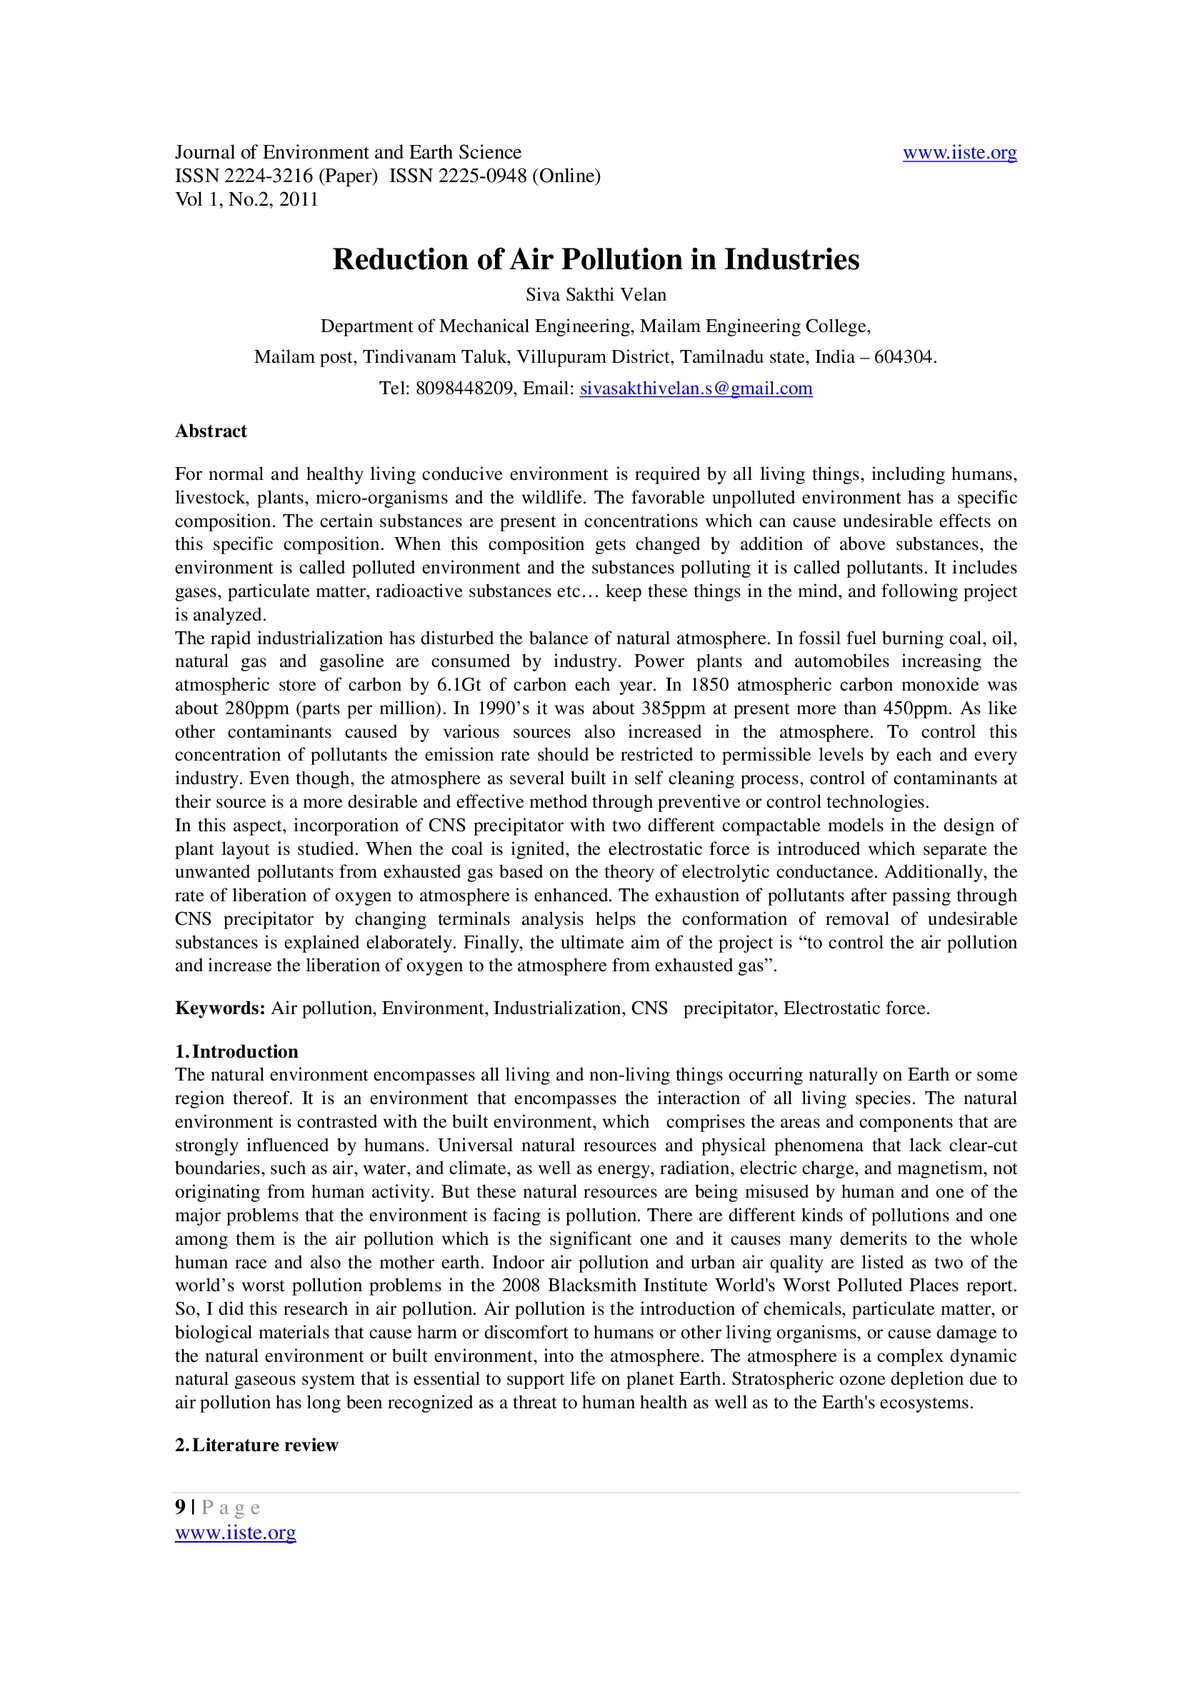 Calaméo - Reduction of Air Pollution in Industries